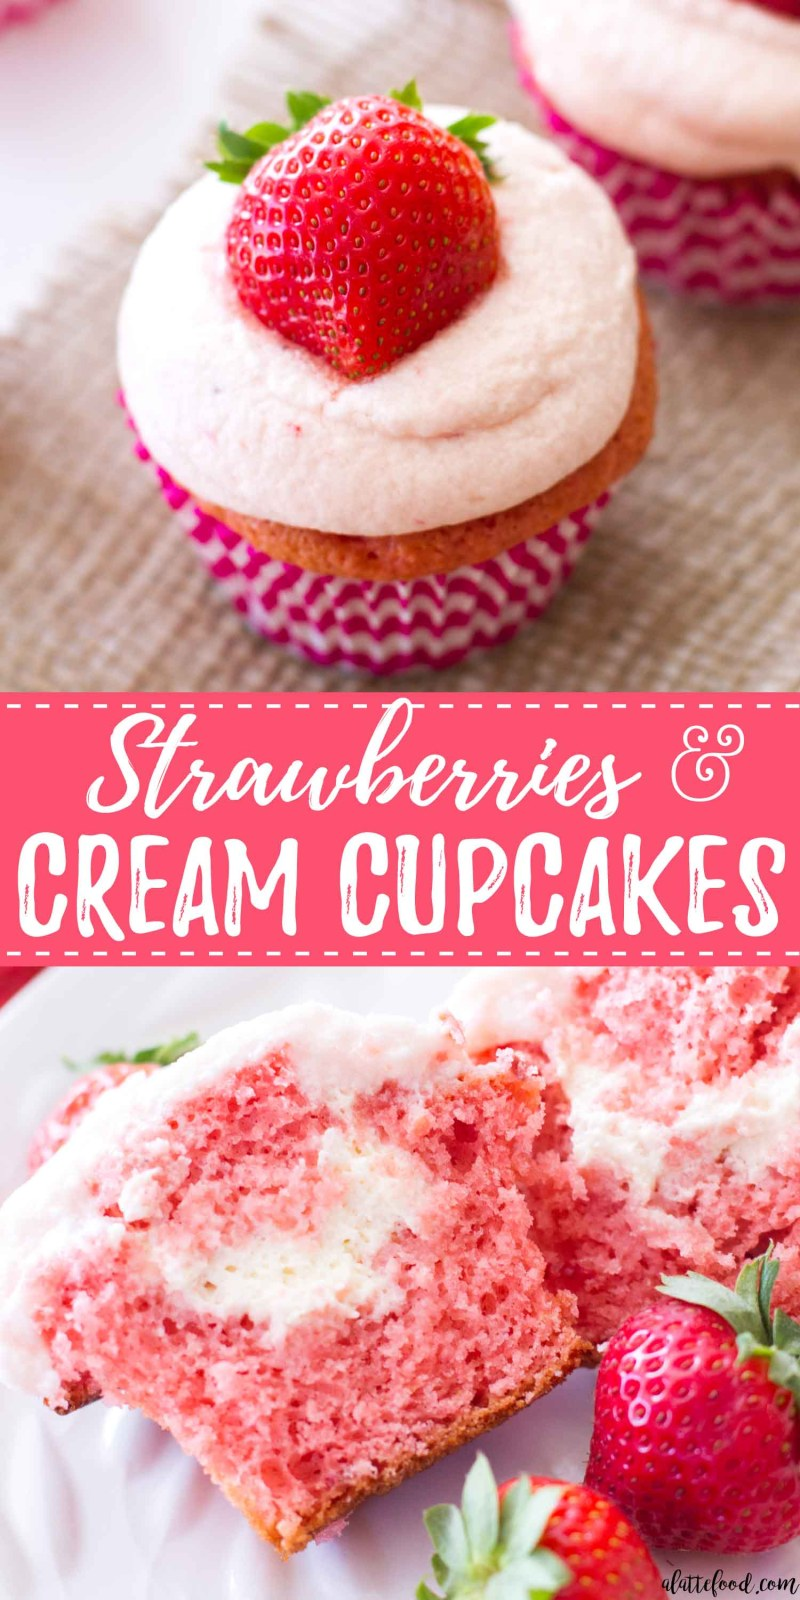 These easy strawberry cupcakes are filled with homemade whipped cream and topped with homemade fresh strawberry frosting! These pretty in pink cupcakes would make the best Valentine's Day dessert, spring dessert, or summer dessert! These strawberries and cream cupcakes begin with a box of white cake mix and strawberry gelatin, making them incredibly simple and entirely flavorful! how to make strawberry cupcakes, homemade strawberry cupcake recipe